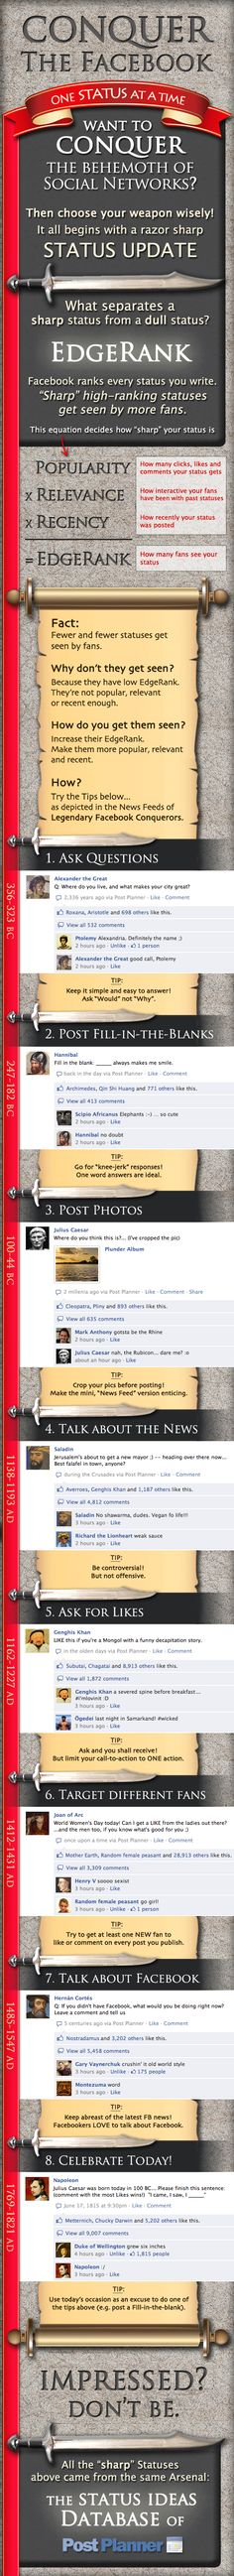 Facebook Status Ideas to Improve your Edgerank